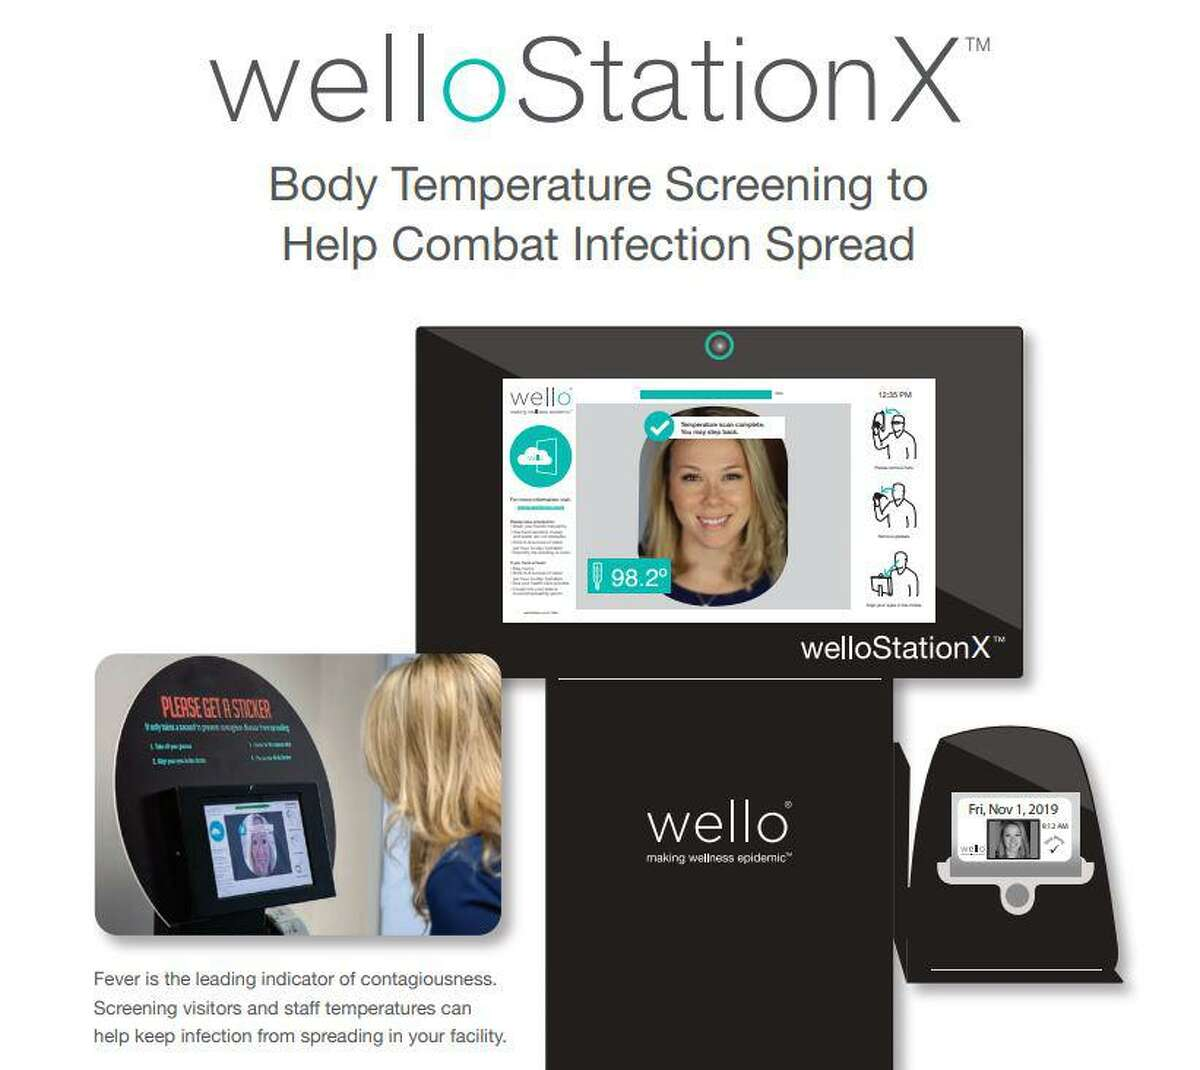 The Woodlands Township Board of Directors approved in August plans to buy stand-alone COVID-19 screening kiosks called the WellO StationX temperature screening kiosk. The township hopes to purchase eight of the devices for entrances to the township offices at a cost of $84,000. Each kiosk takes the temperature of a peron in a non-touch process and cost $10,500 per device.